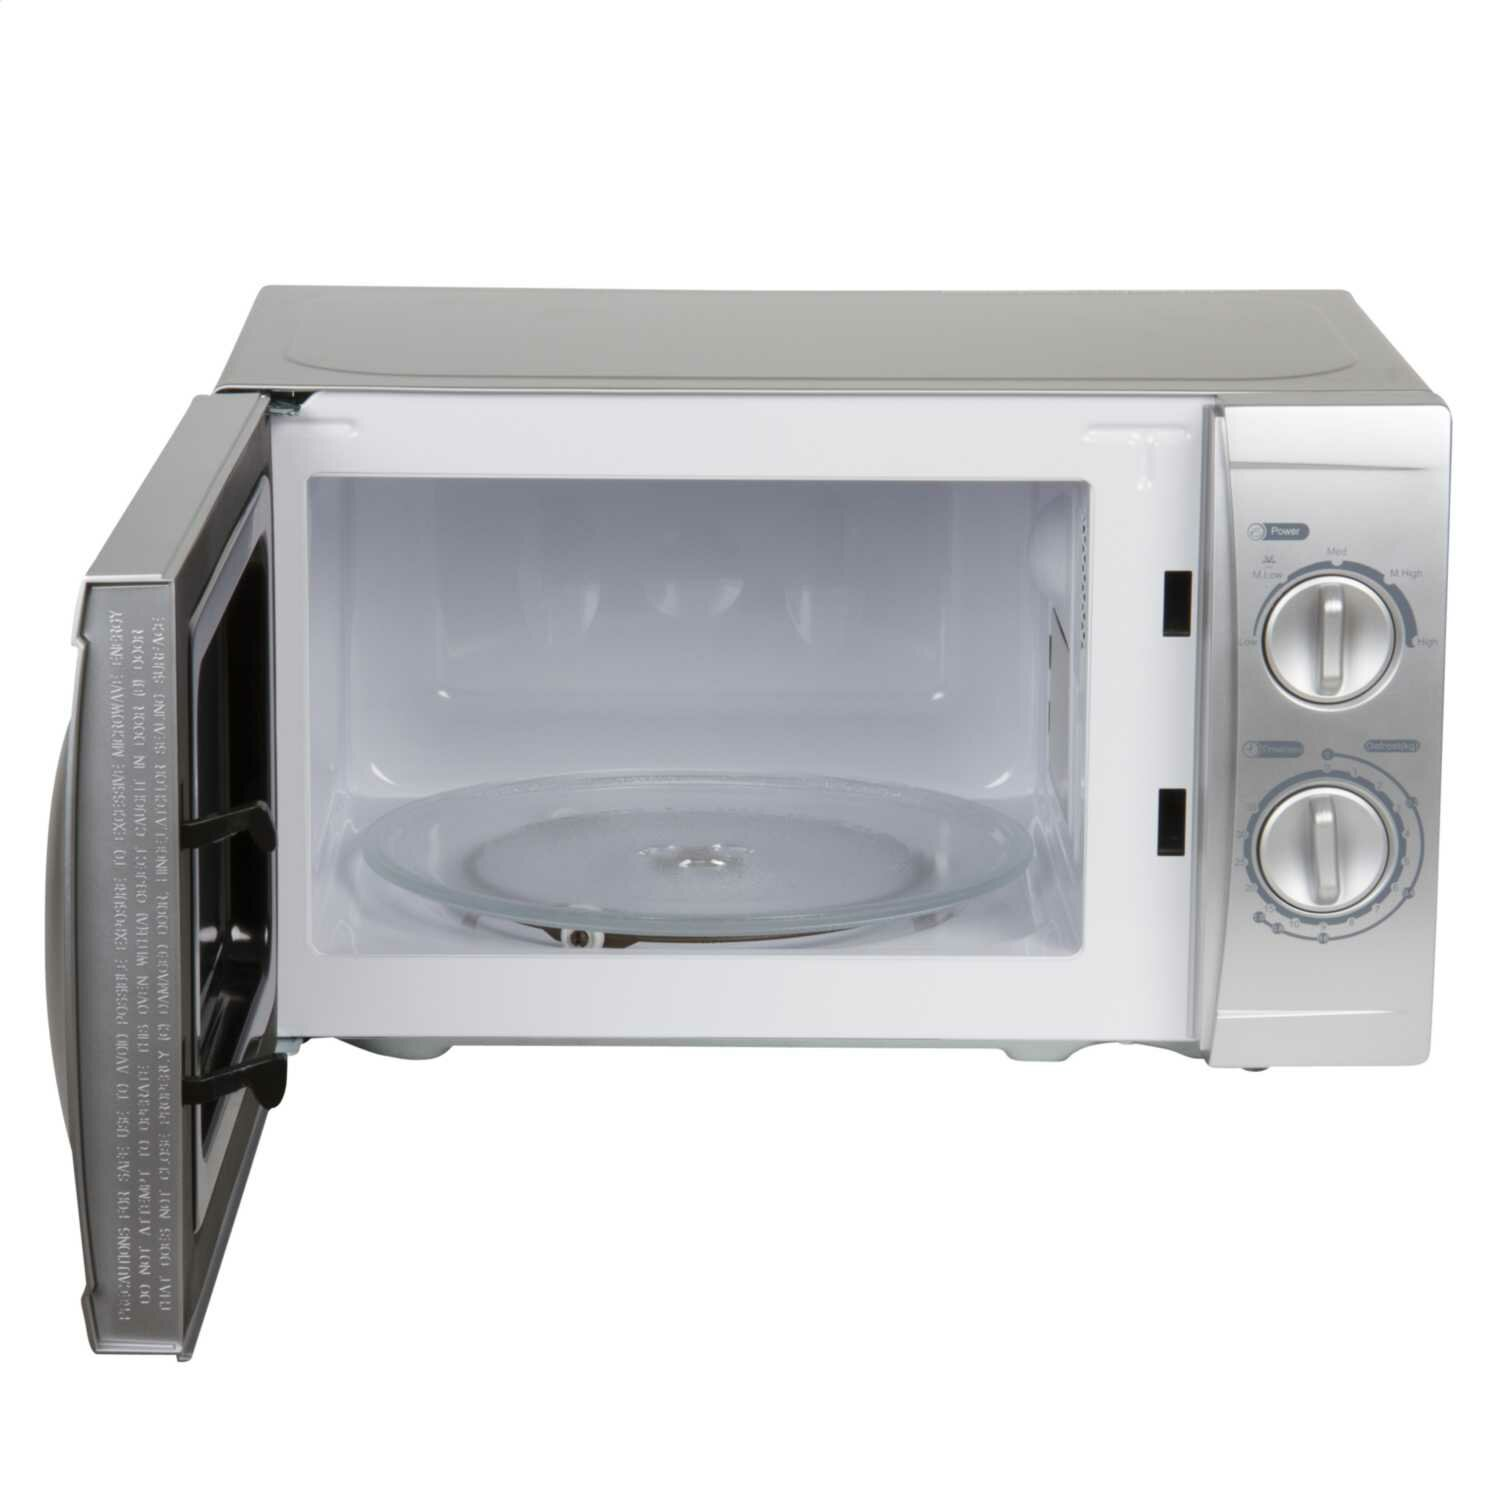 Countertop Microwave Uk : Igenix 20L 700W Countertop Microwave in Silver Wayfair UK